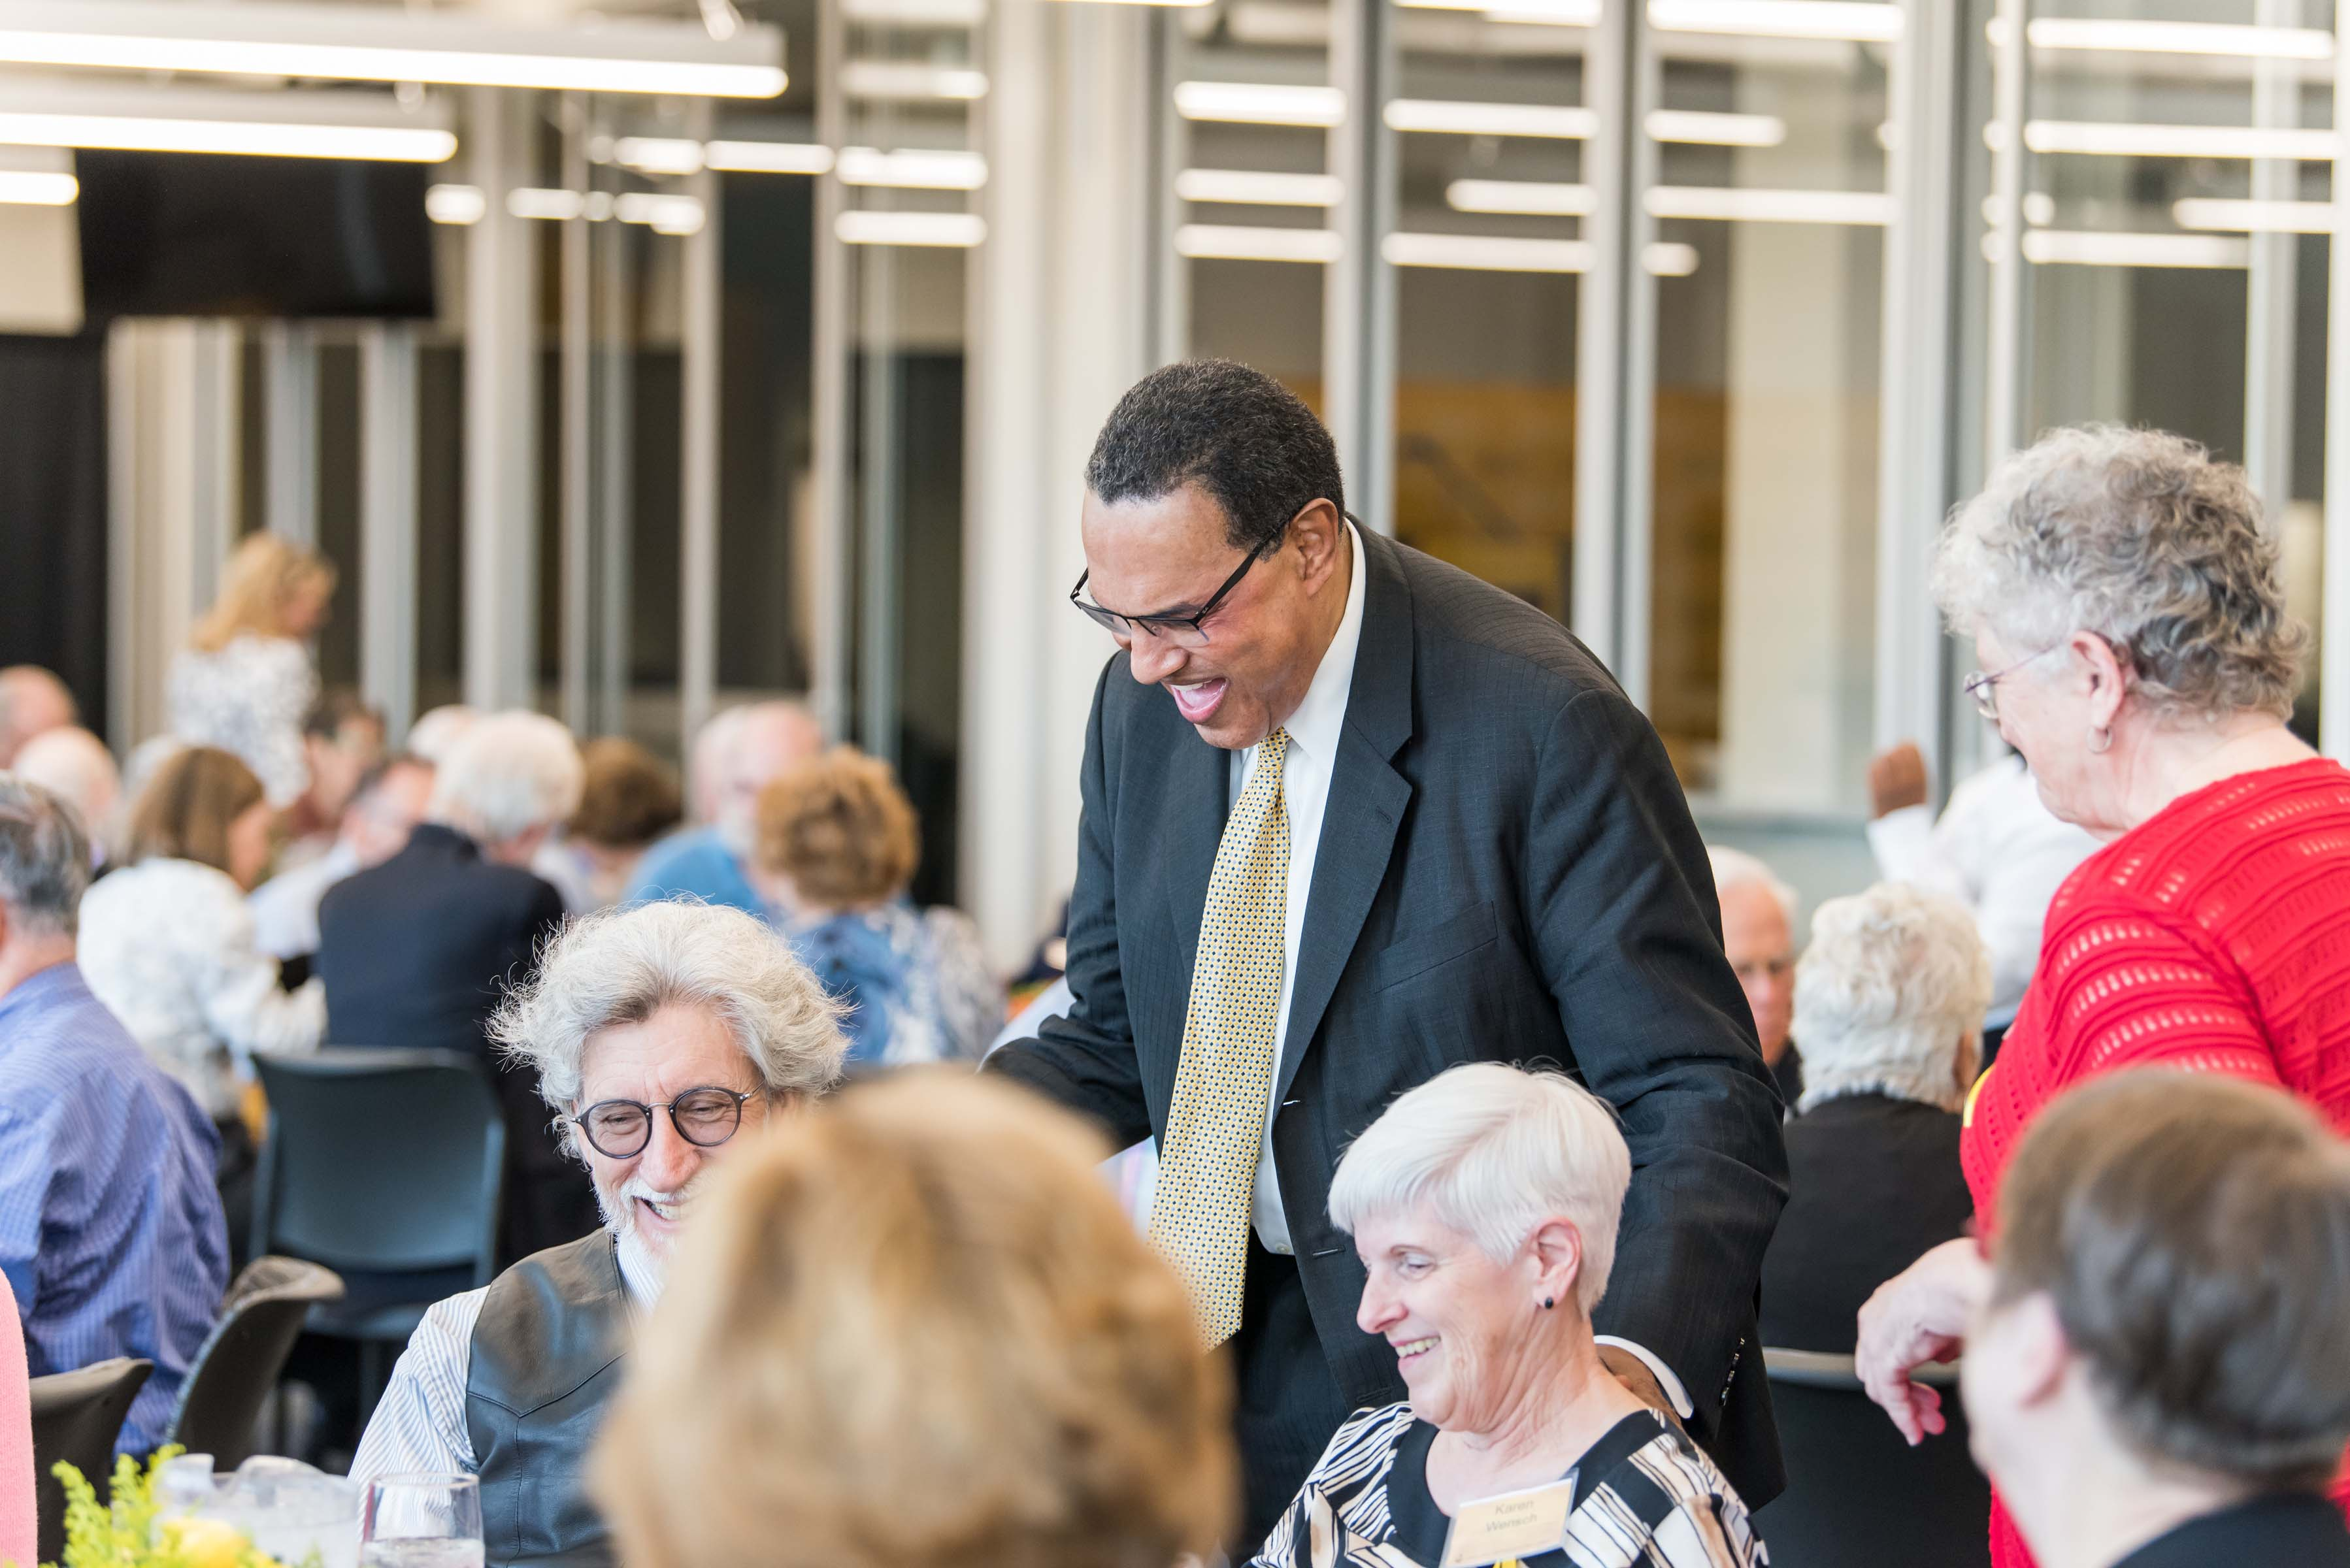 Hrabowski pats man sitting at table at Wisdom Institute lunch